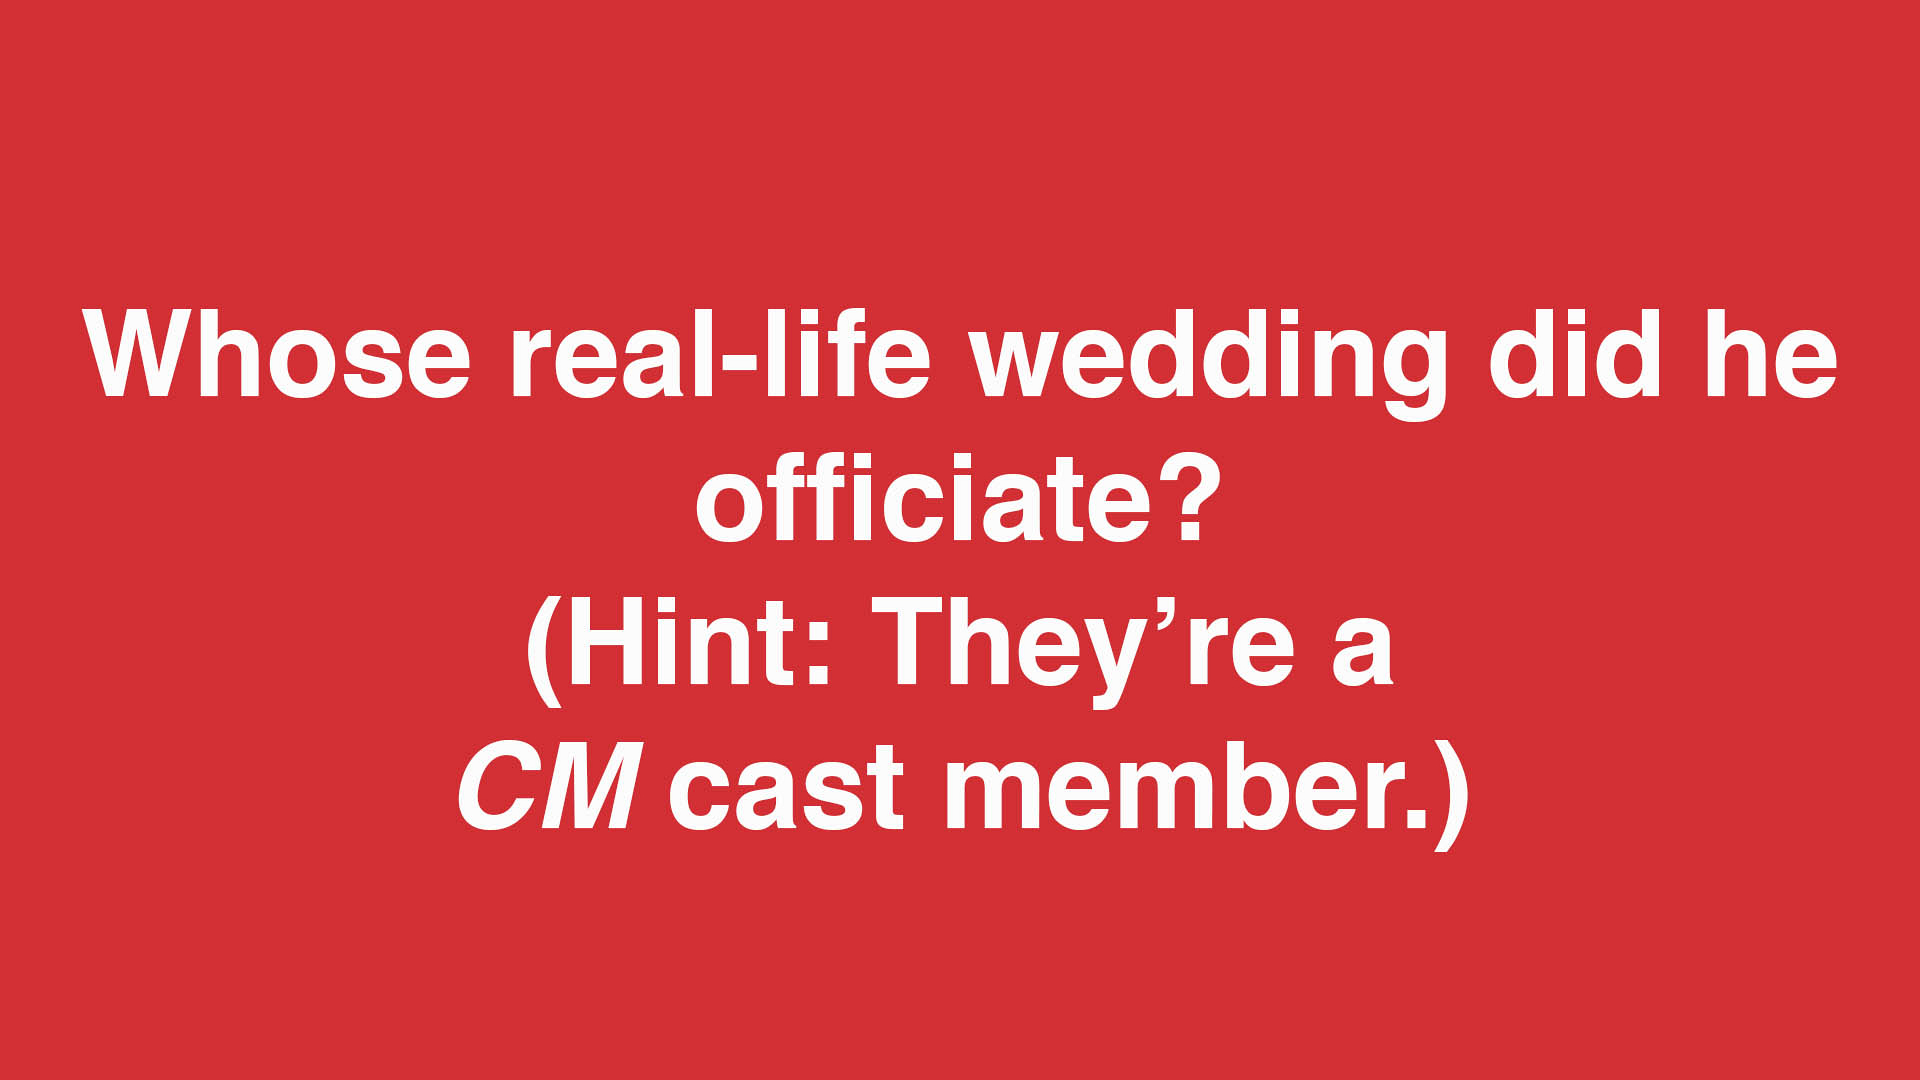 Whose real-life wedding did he officiate?